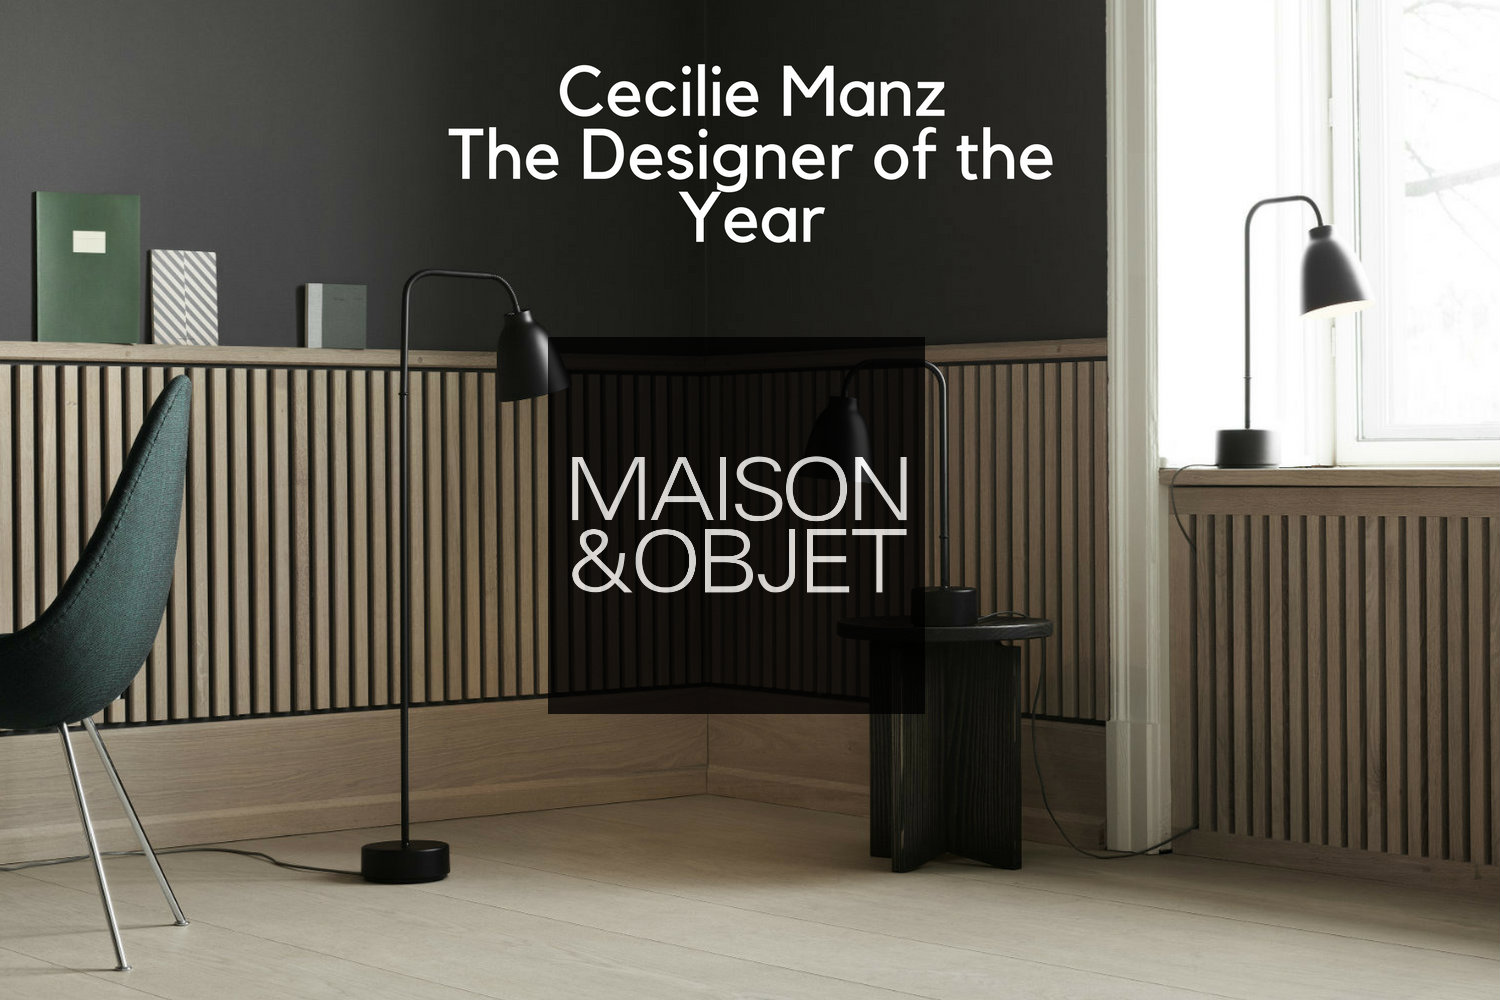 Assez Cecilie Manz: The Designer of The Year at Maison et Objet 2018 QY31